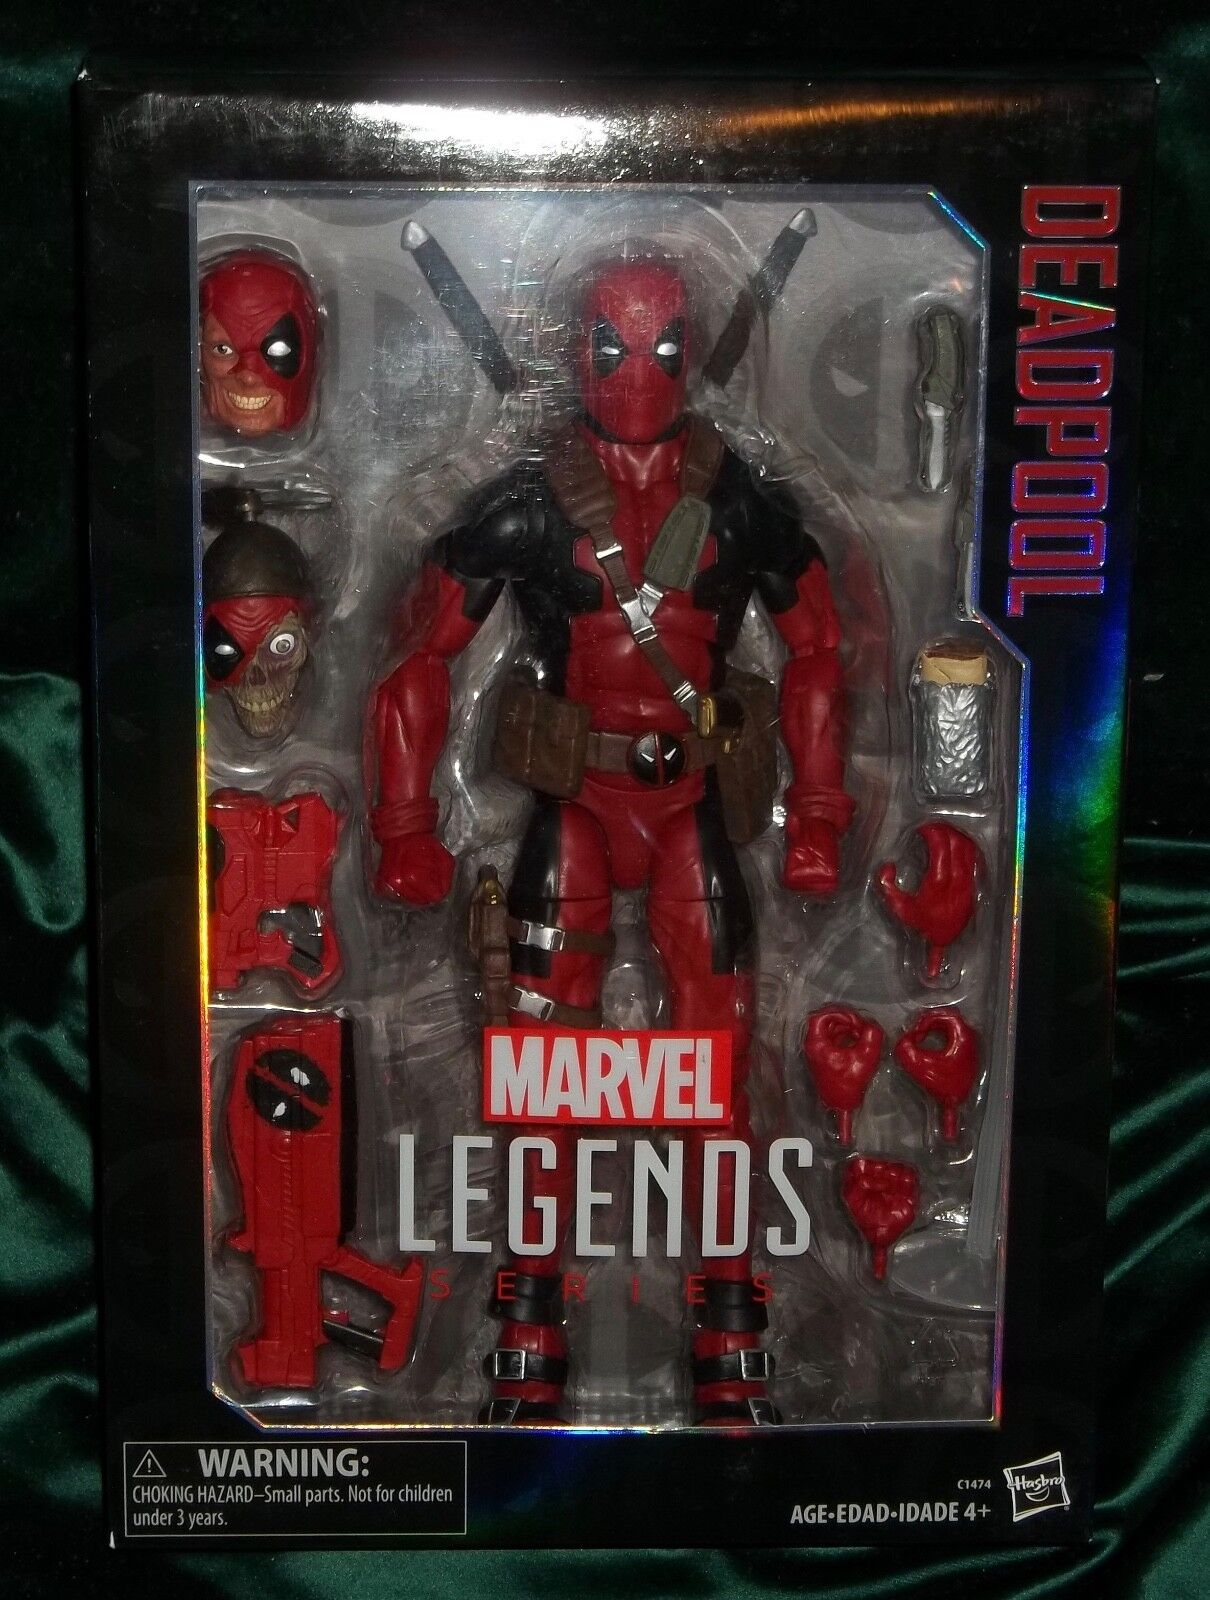 MARVEL LEGENDS X-FORCE SERIES 12 INCH CLASSIC ROT SUIT DEADPOOL FIGURE HASBRO